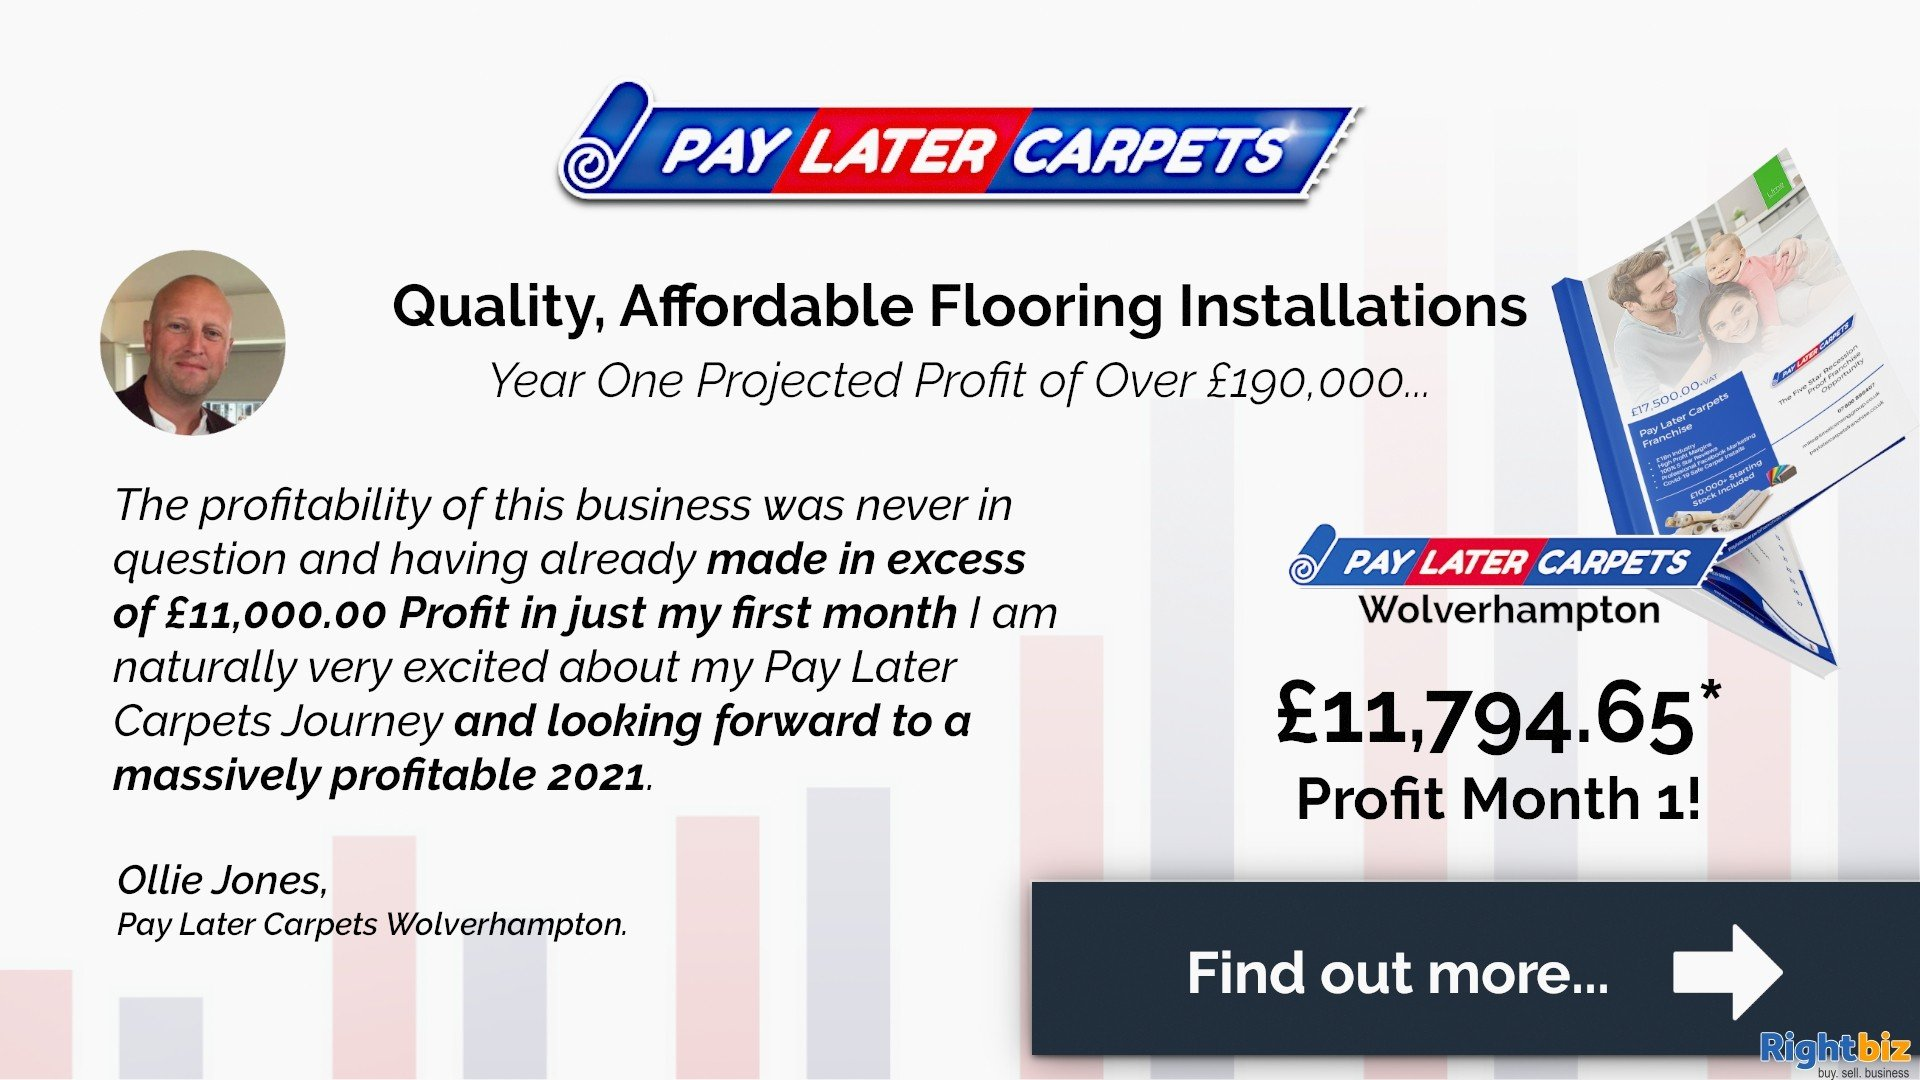 Pay Later Carpets Franchise Glasgow Our First Franchisee Made £11,000+ Profit in Month One - Image 1